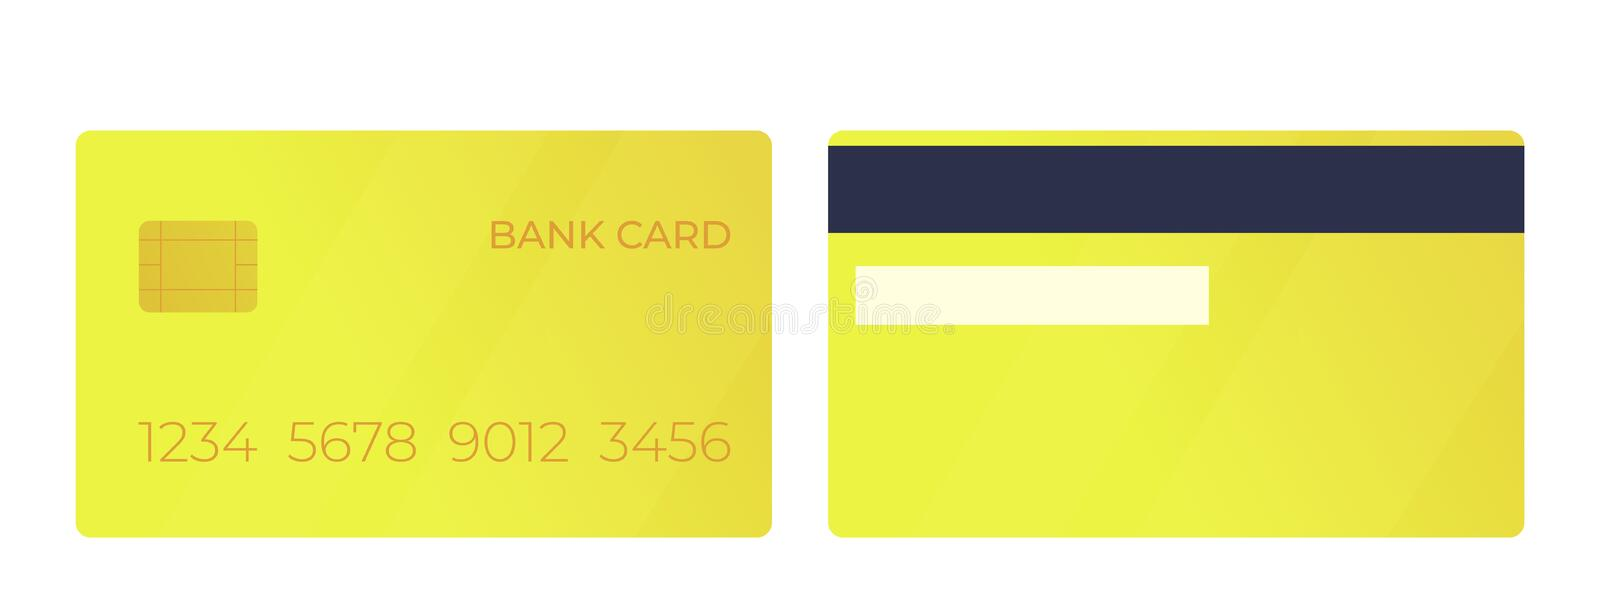 Payment gold bank card. Front and back view. royalty free illustration